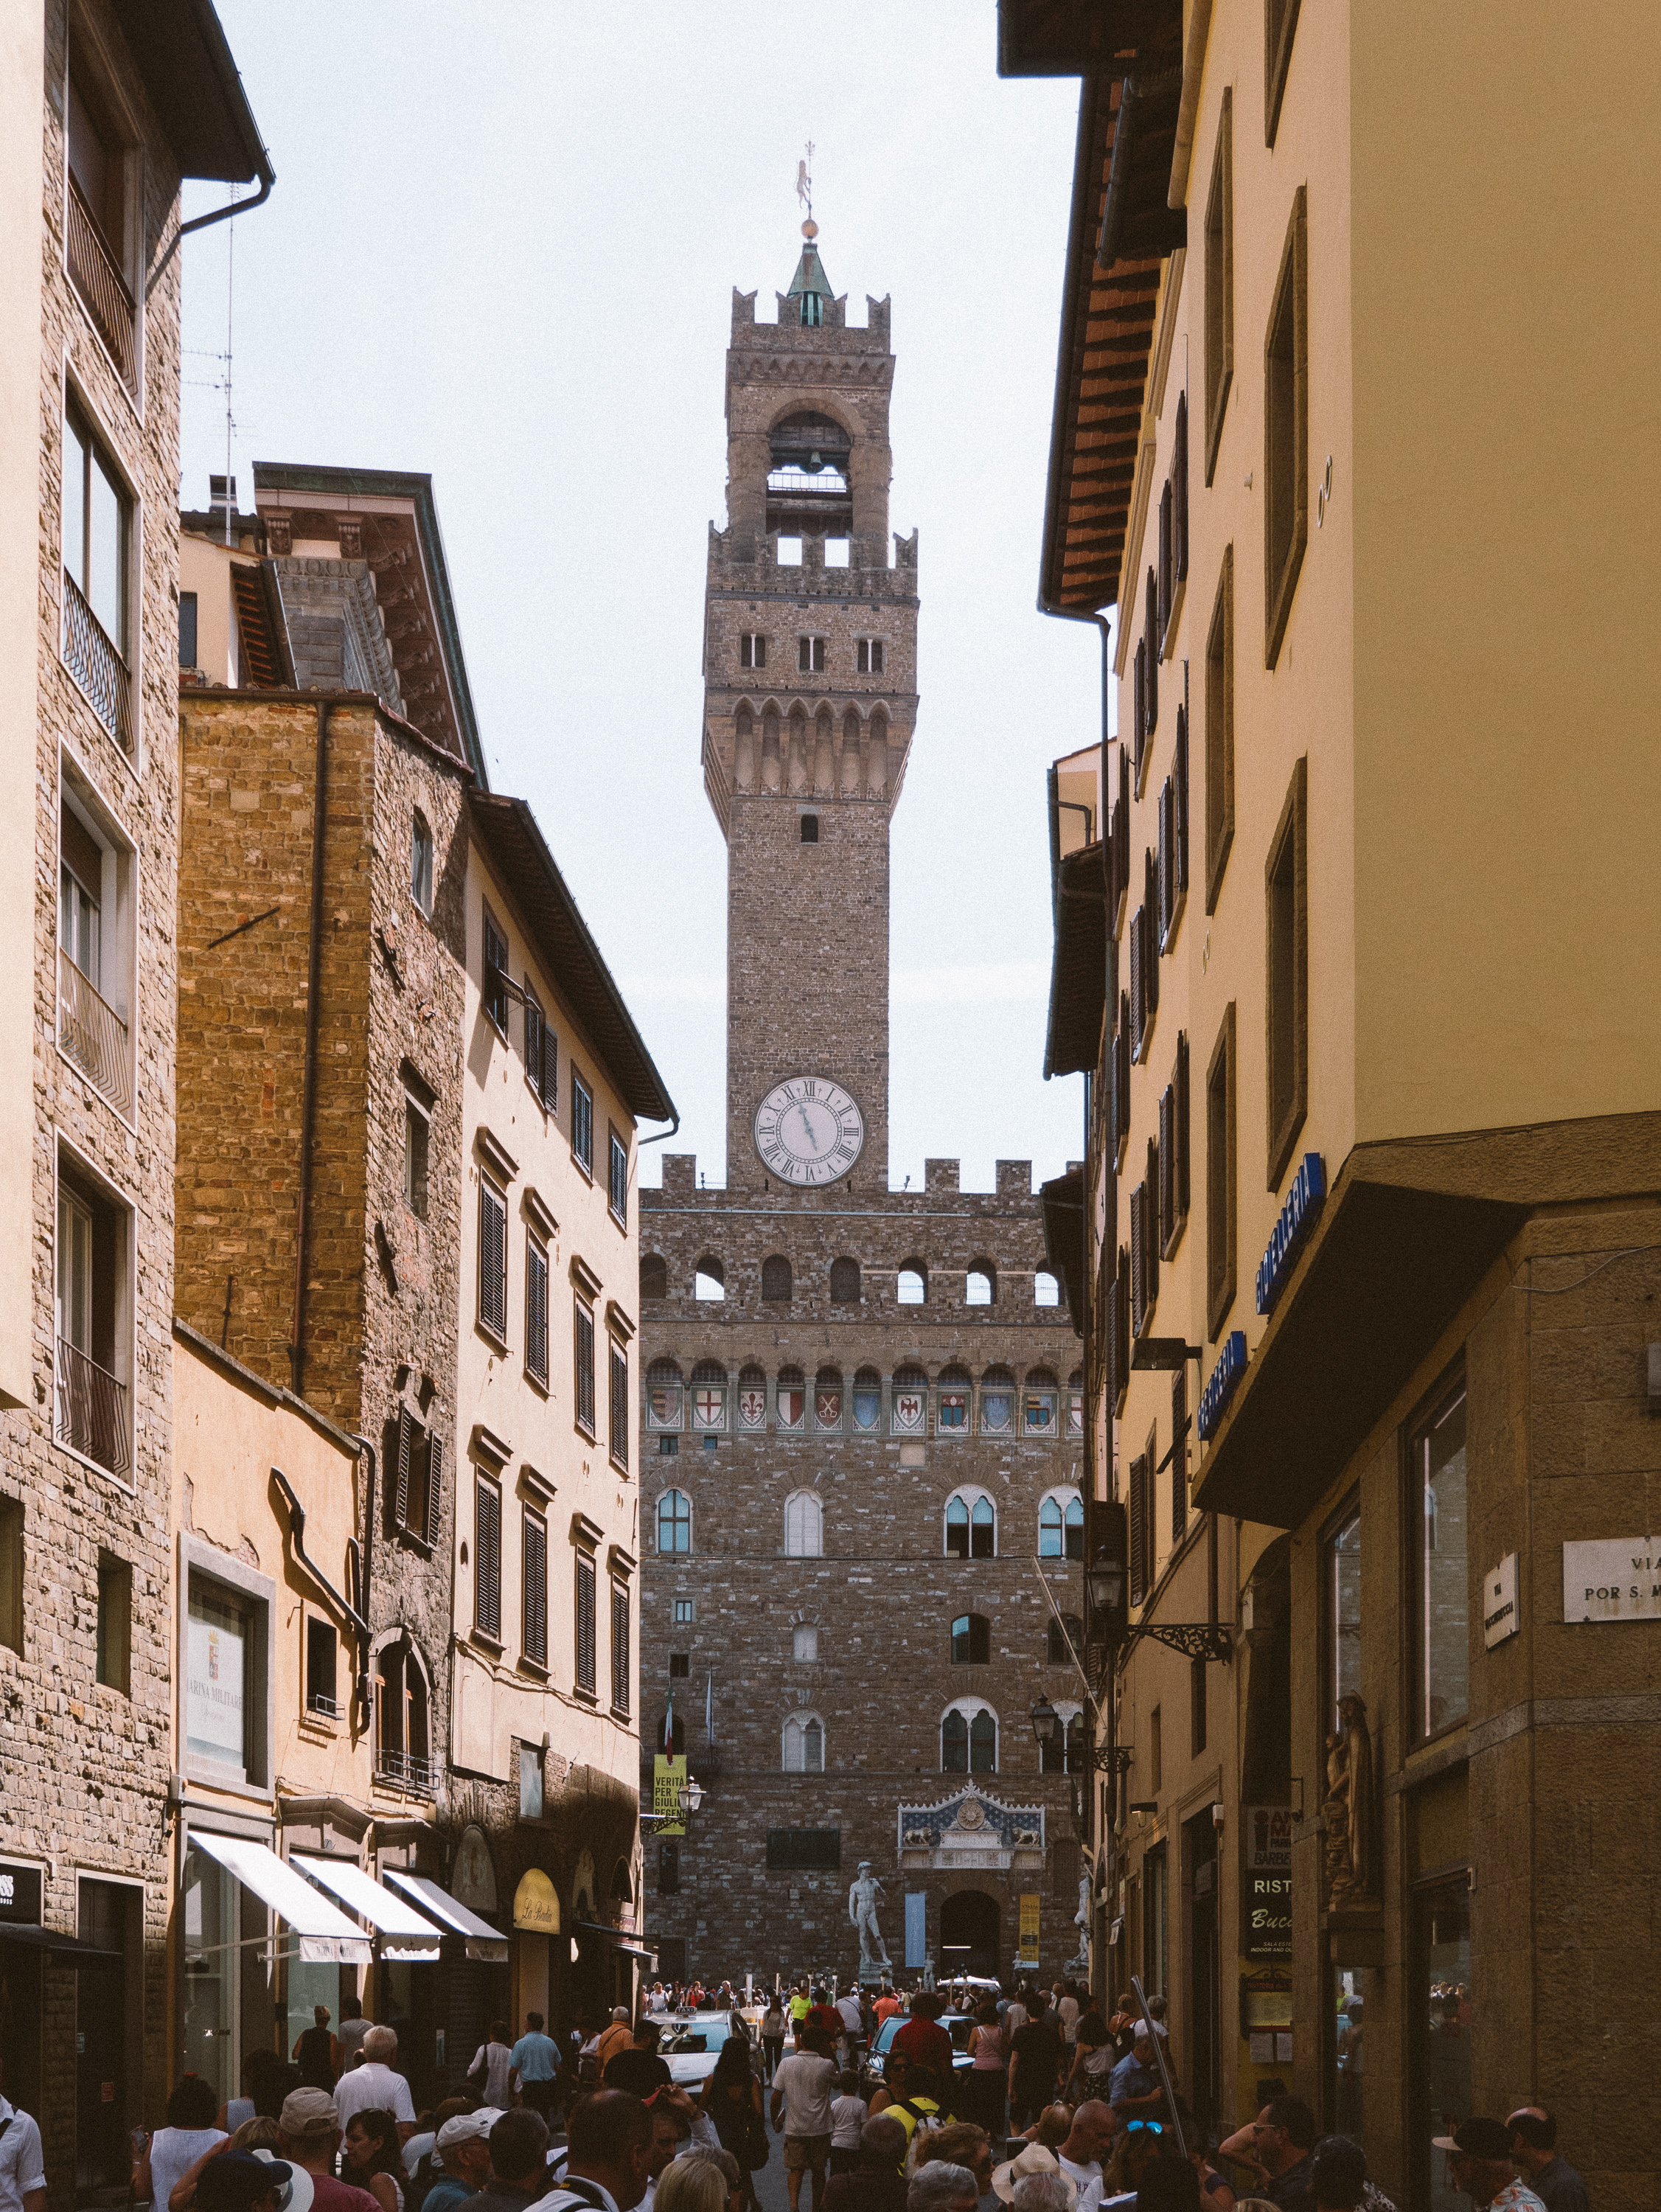 fat_creative_travel_blog_3_things_you_should_know_when_visiting_florence-58.jpg